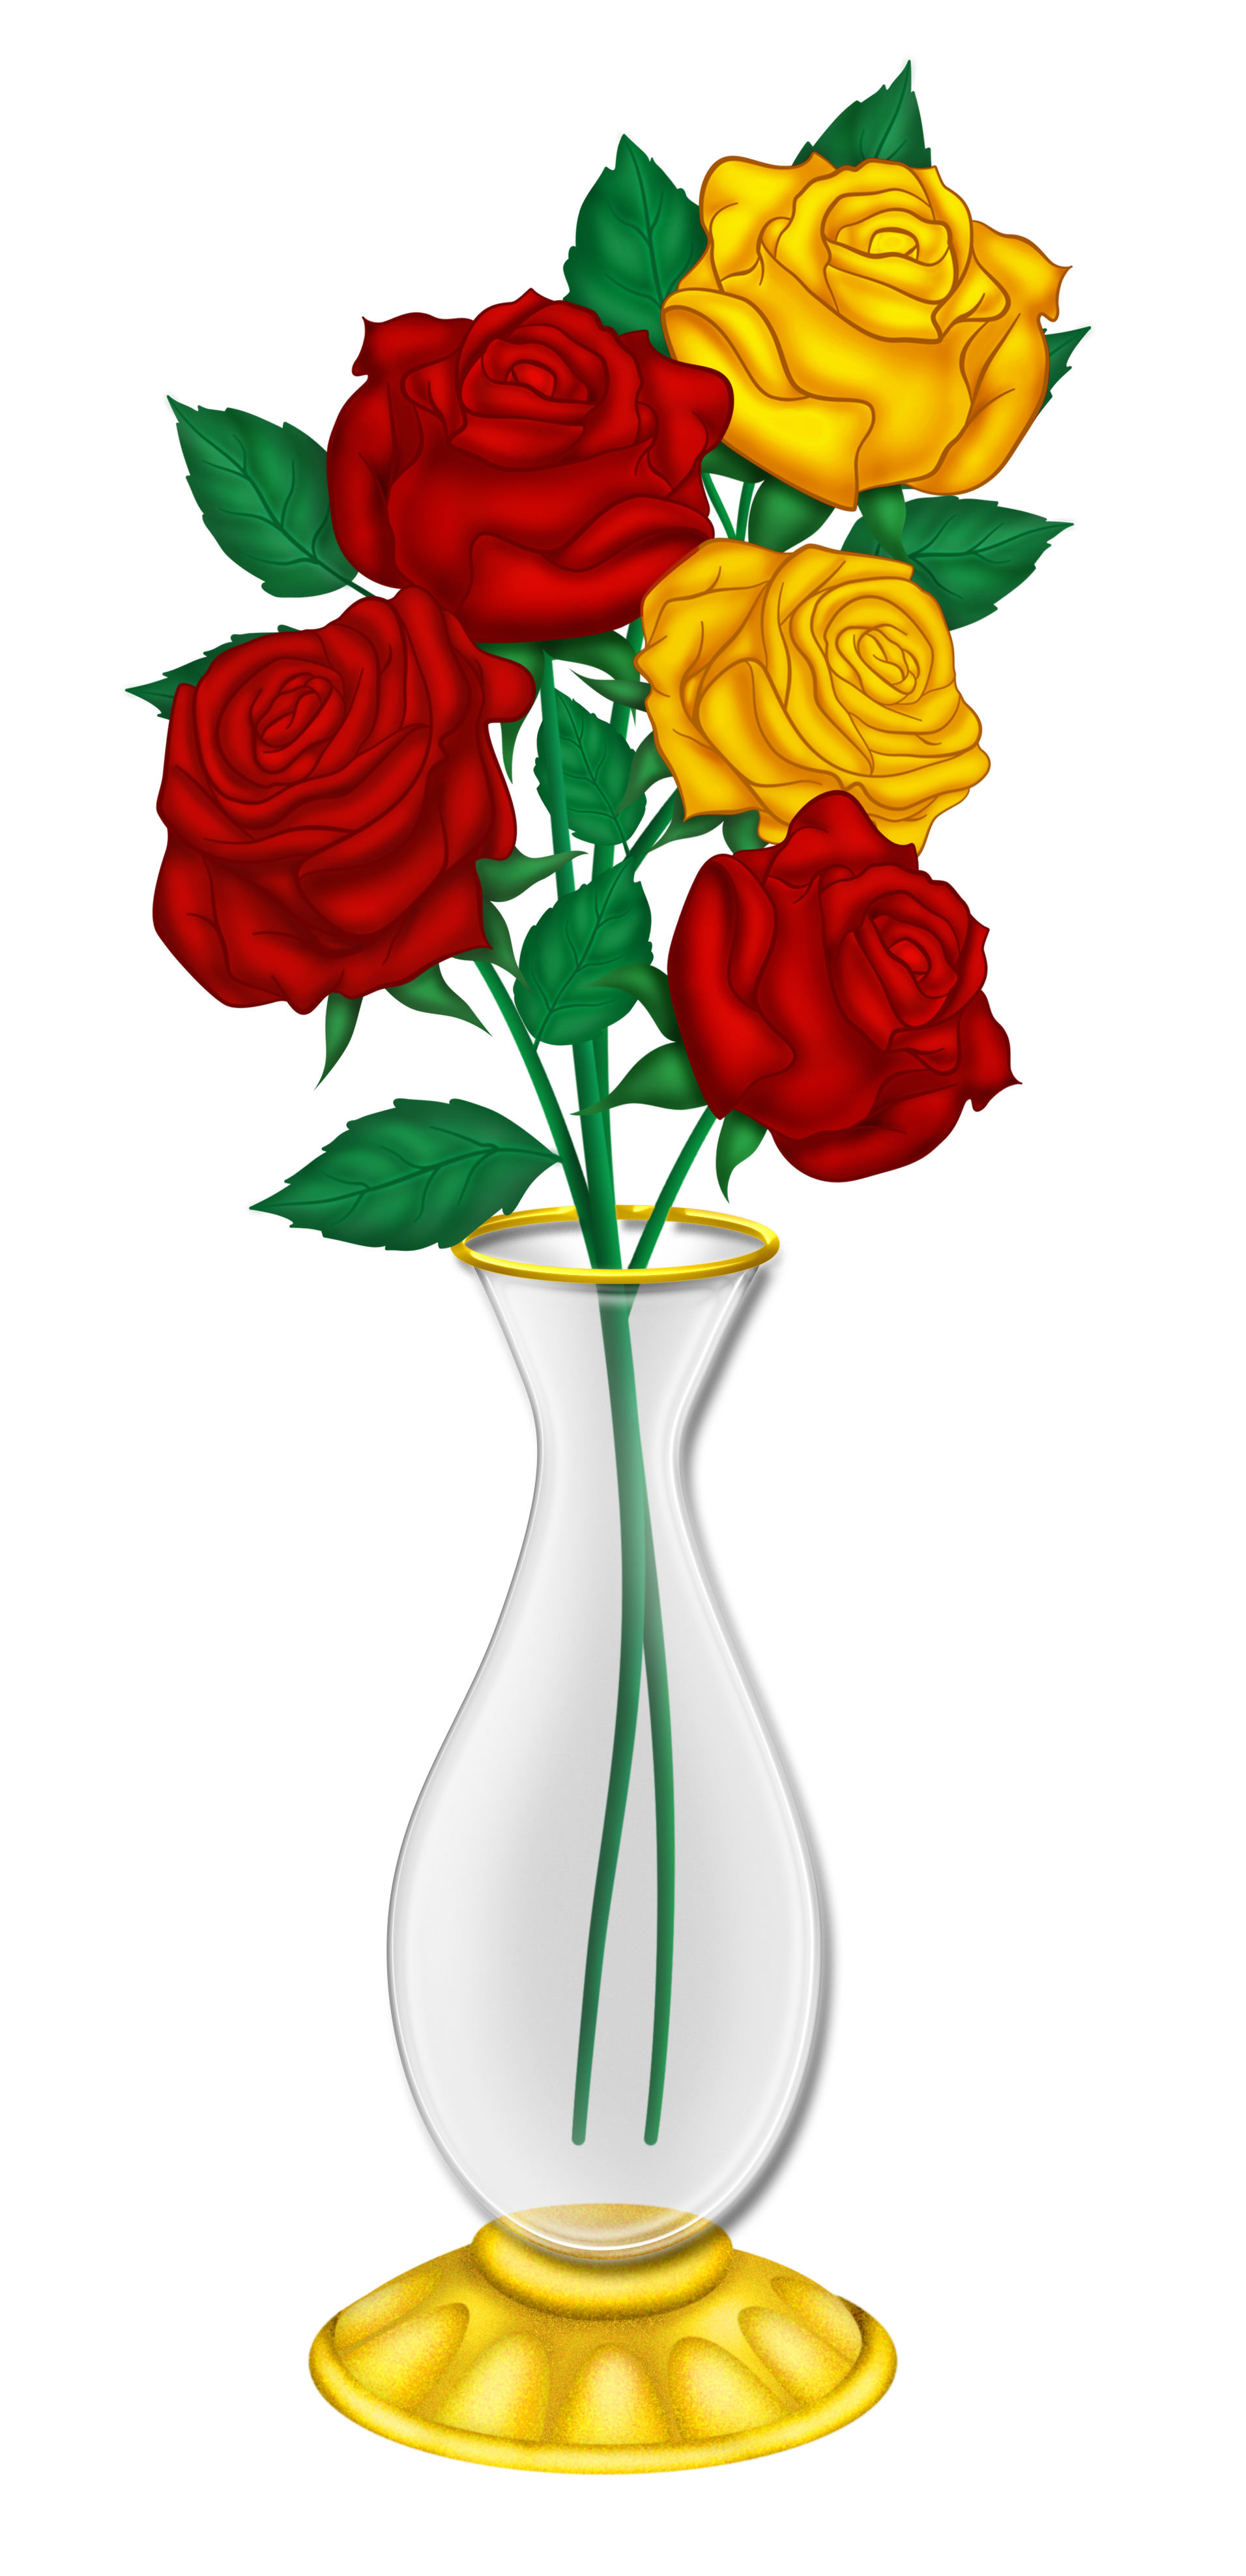 Flower in vase clipart banner library stock Vase Clipart at GetDrawings.com | Free for personal use Vase Clipart ... banner library stock